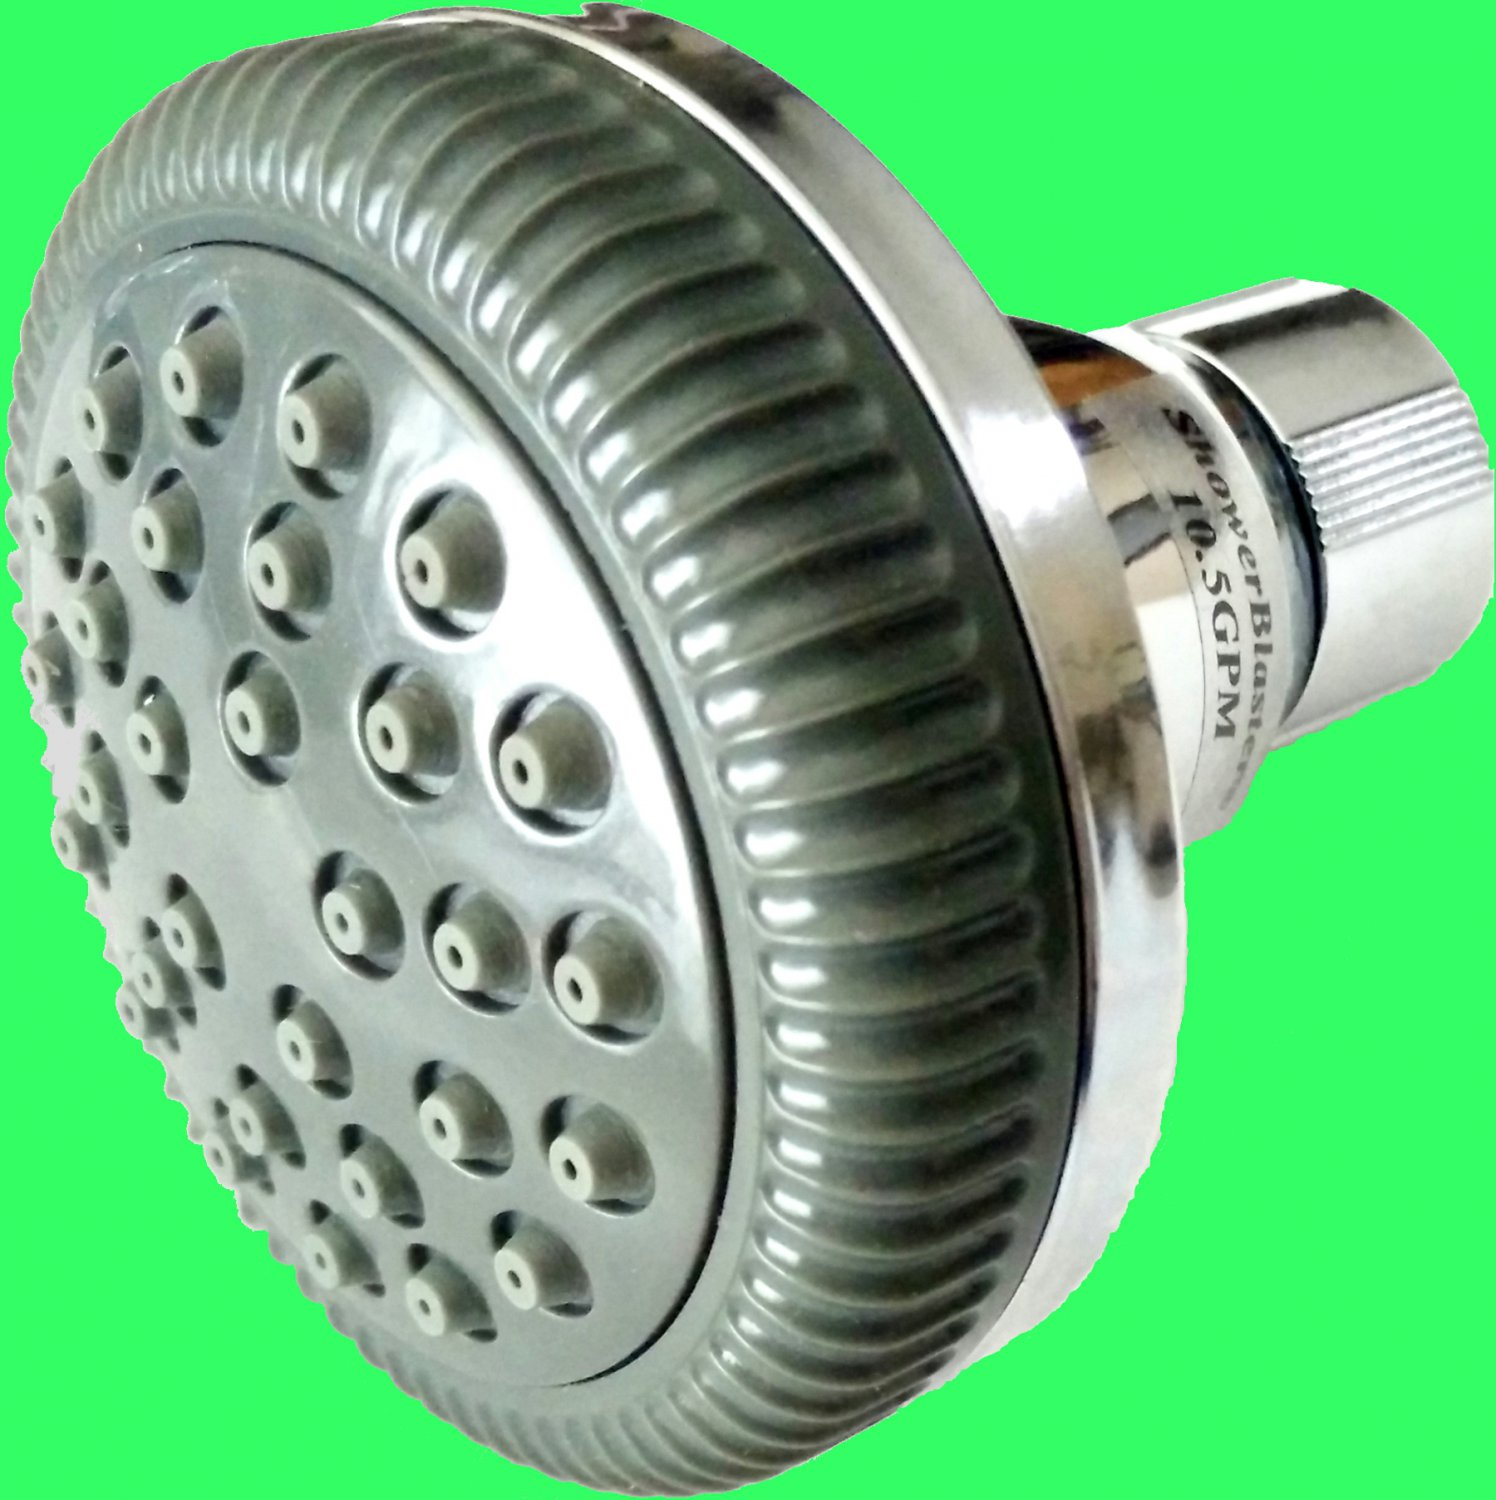 SHOWER BLASTER OVER 10.5 GPM DRENCHER HIGH PRESSURE SHOWERBLASTER SHOWERHEAD